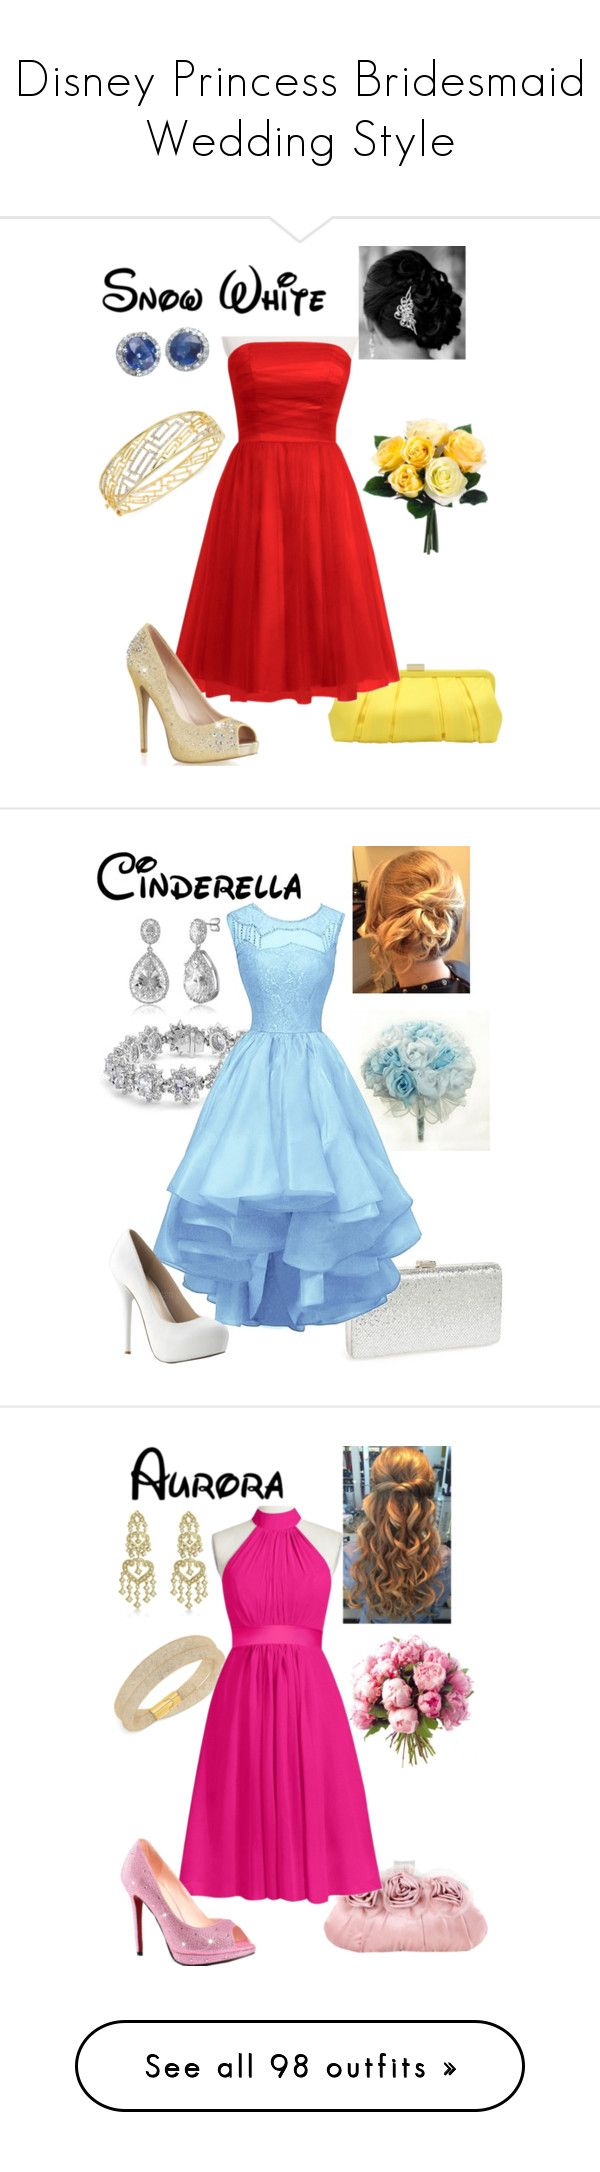 """Disney Princess Bridesmaid Wedding Style"" by briony-jae ❤ liked on Polyvore featuring Nina, Simone I. Smith, Effy Jewelry, Natasha, Bling Jewelry, BERRICLE, Jacki Design, Cadeau, Allurez and Swarovski"